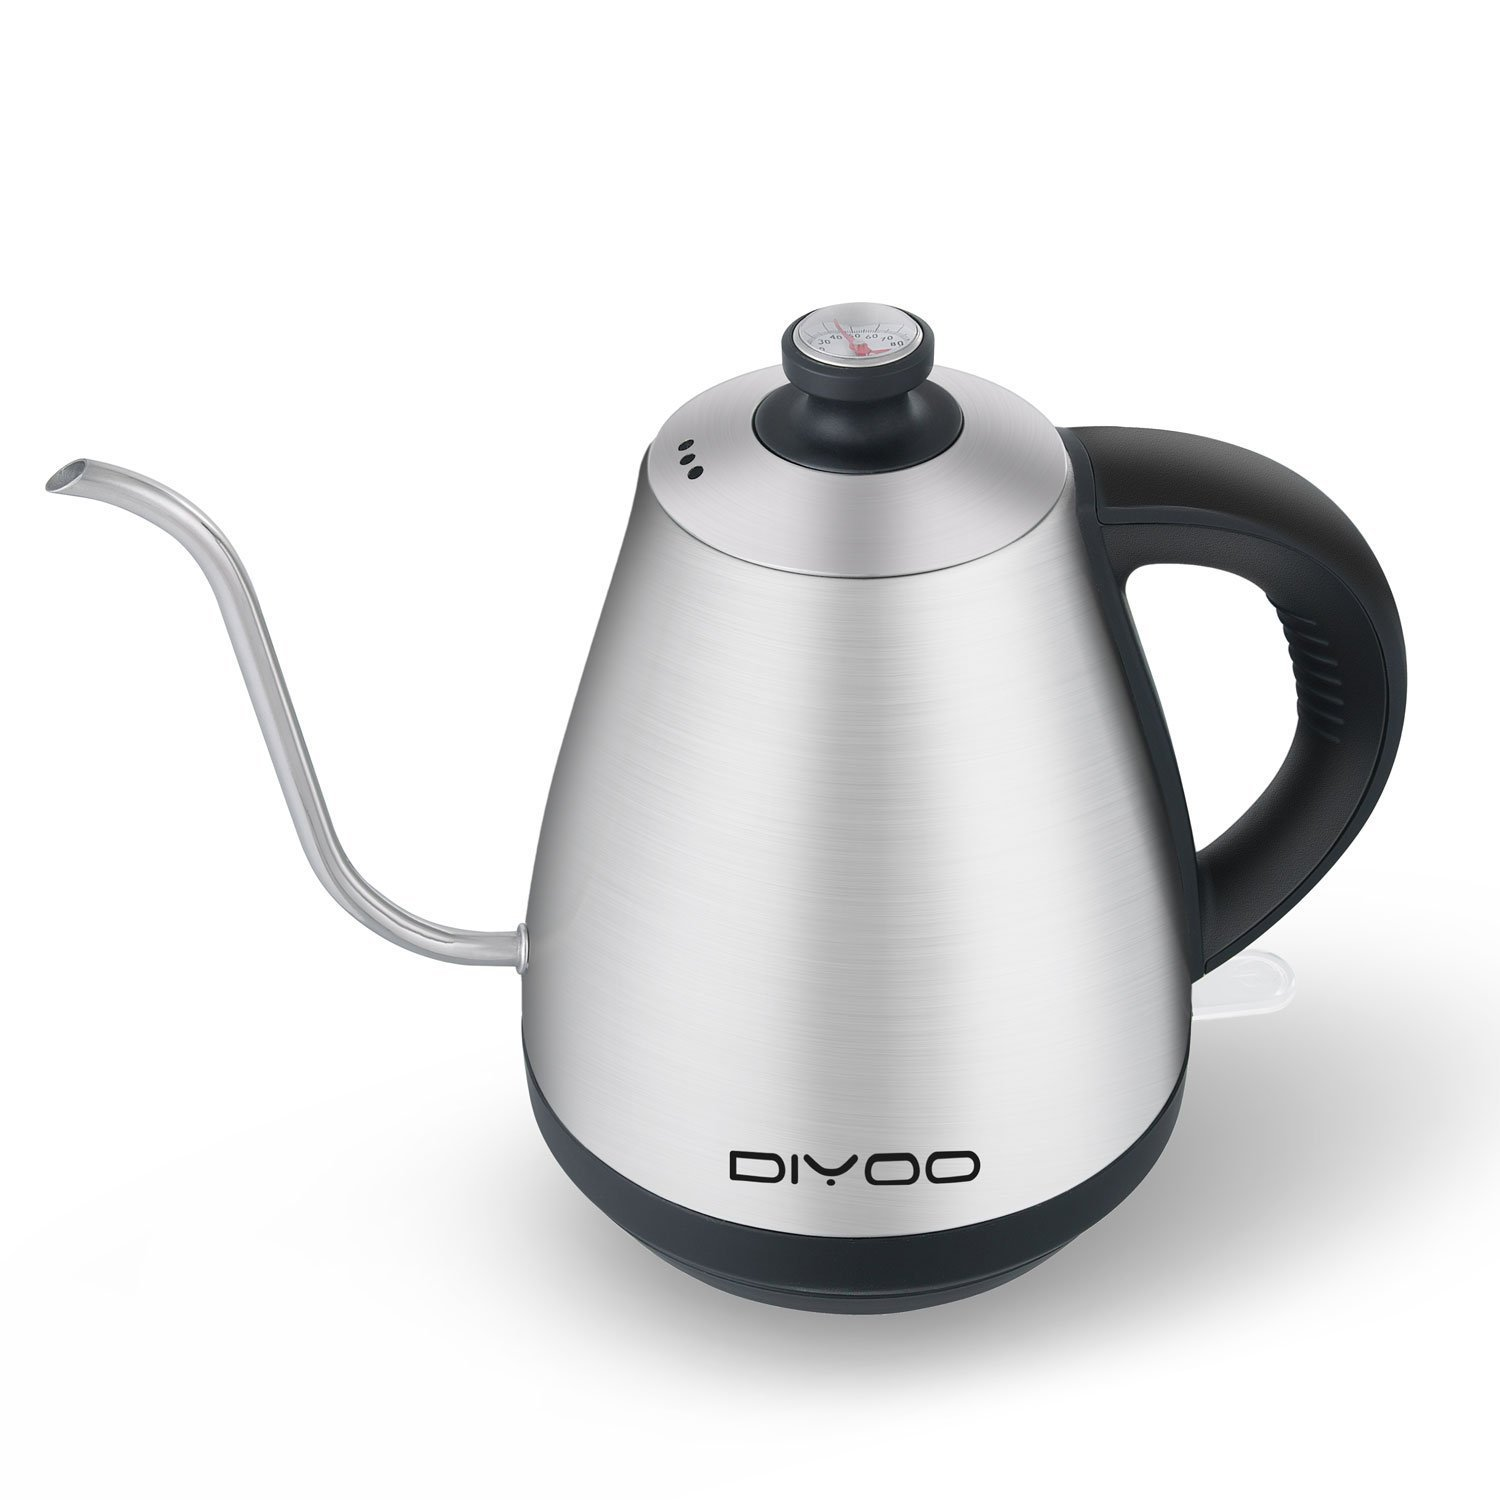 Electric Tea Kettle, Gooseneck Kettle Stainless Steel Cordless with Thermometer, Auto Shut-Off, Boil-Dry Protection for Tea, Coffee and Hot Water, Plastic Free, 1.0 Liter/0.92Quart